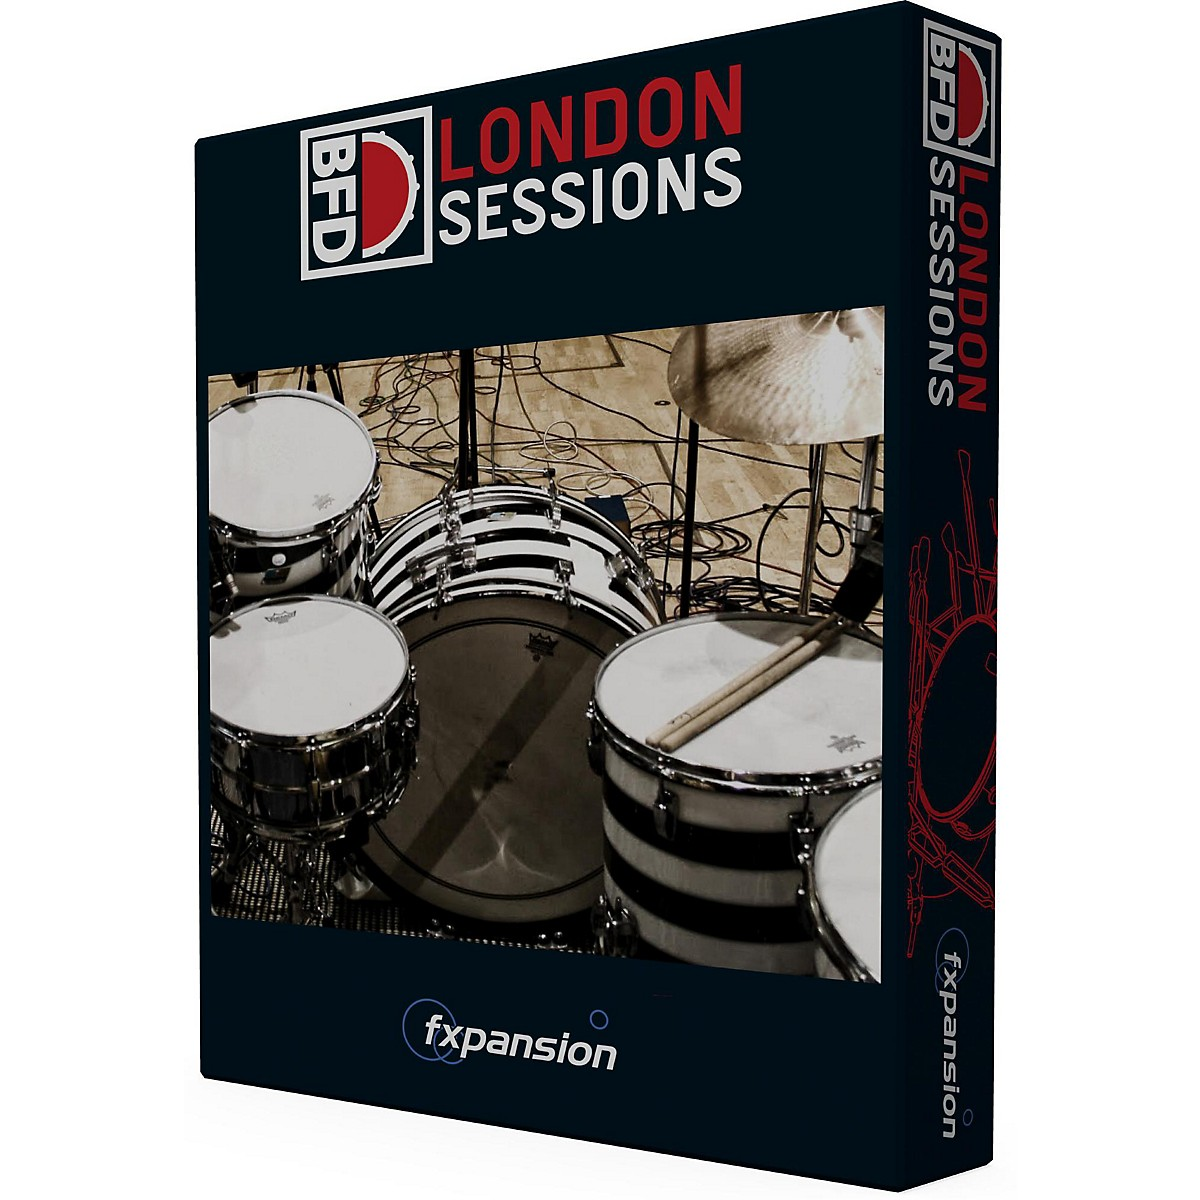 Fxpansion BFD London Sessions